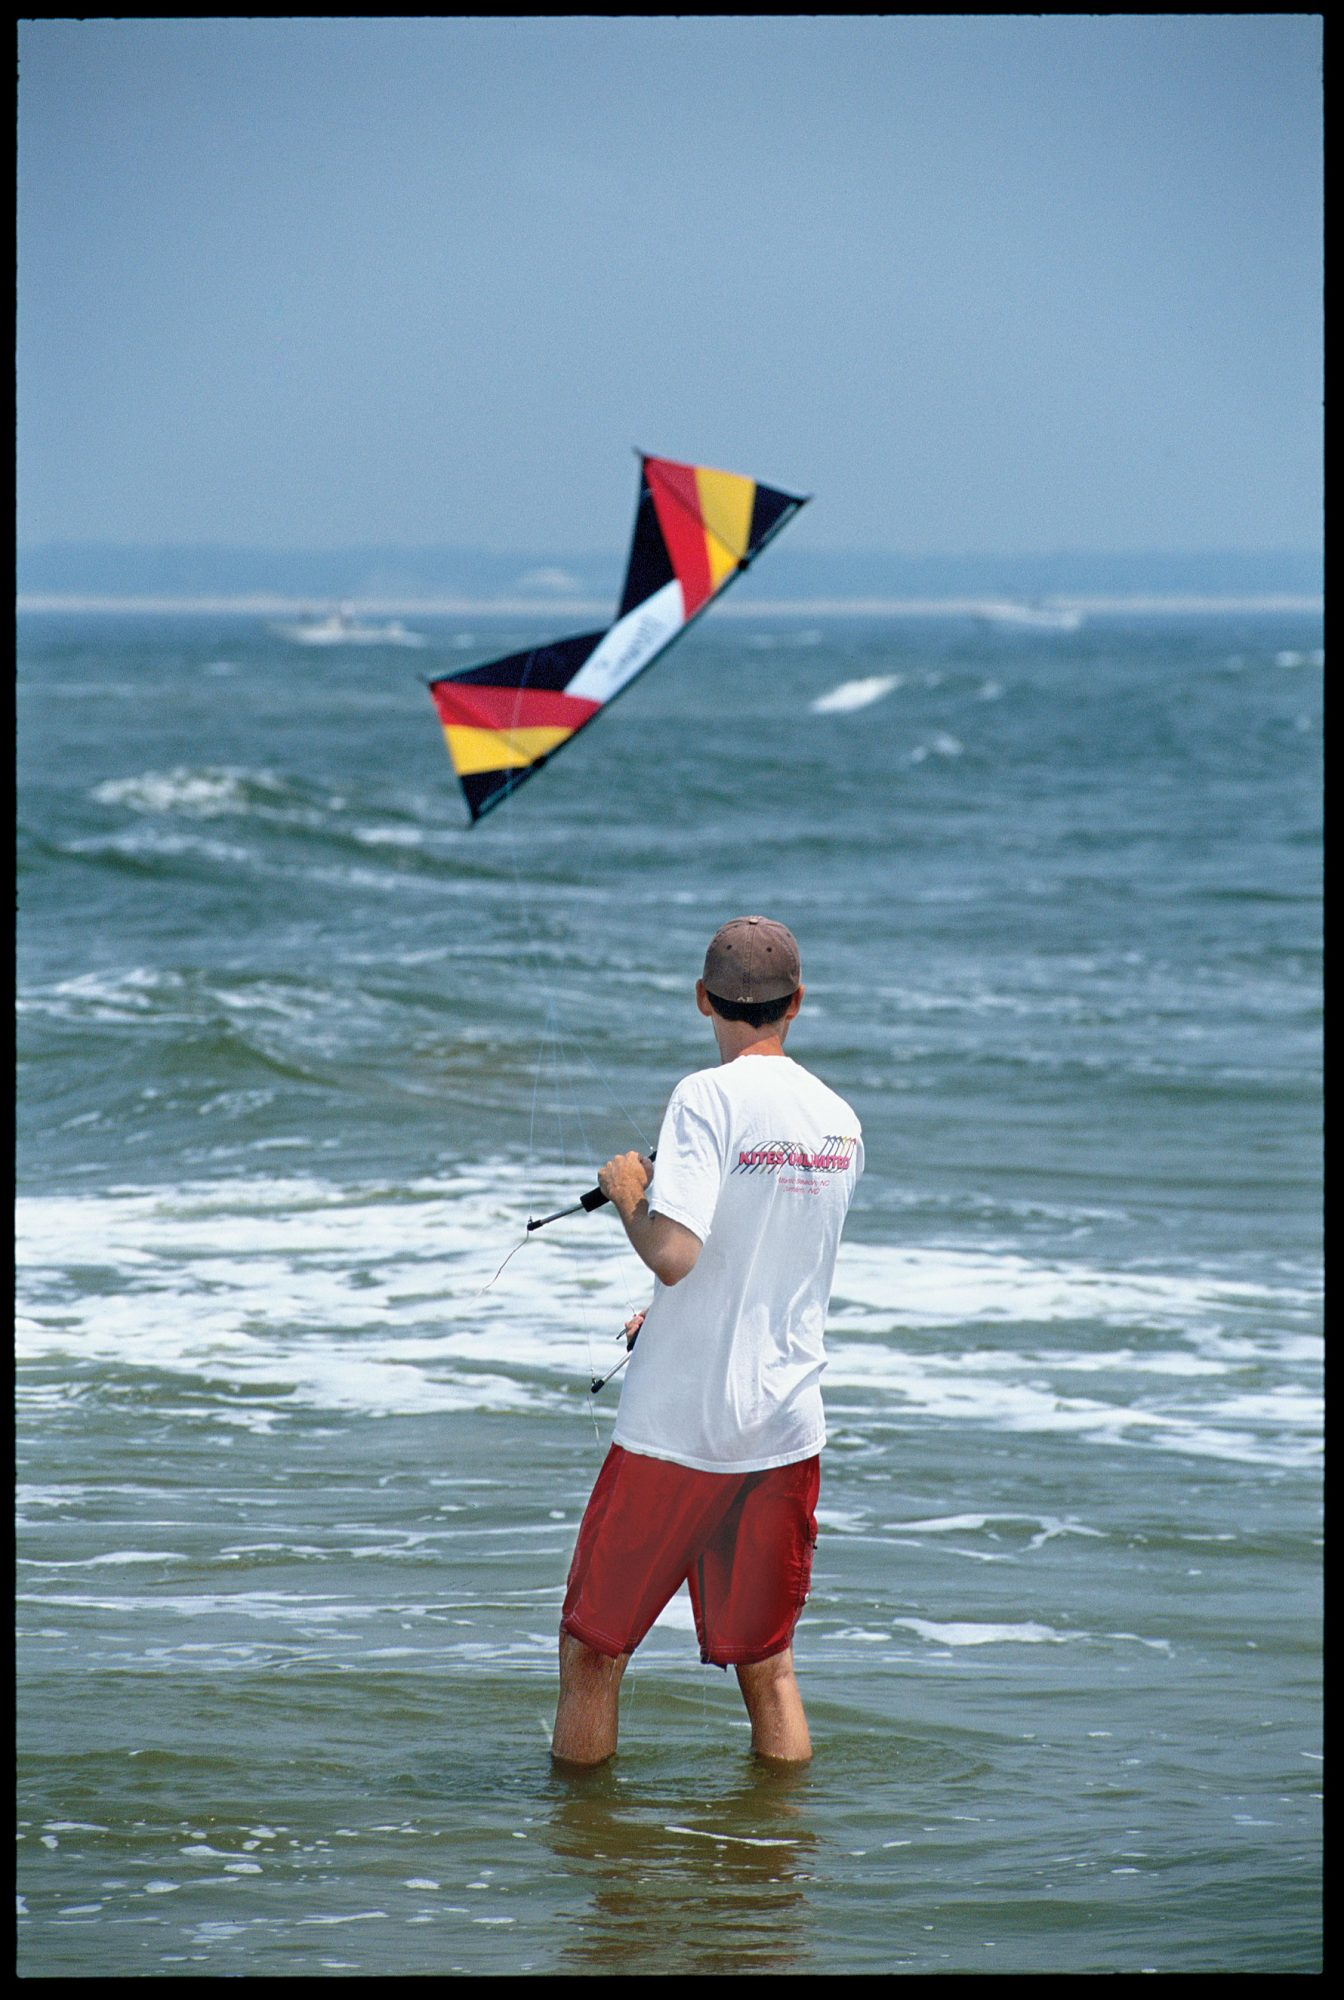 Kites Unlimited